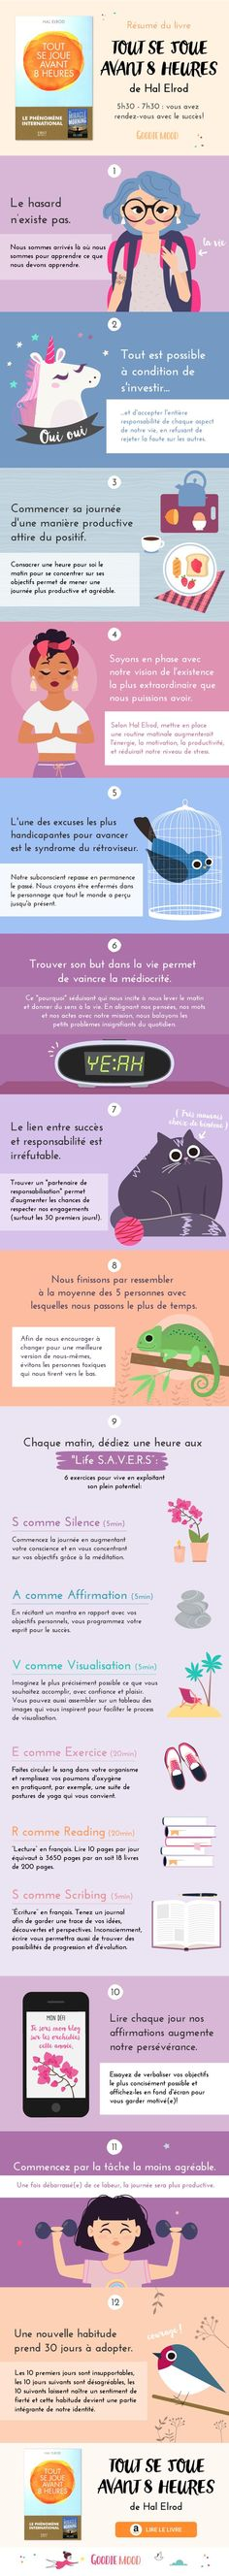 Psychology infographic and charts miracle morning tout se joue avant 8 heures resume du livre Infographic Description miracle morning tout se joue avant 8 Positive Mind, Positive Attitude, Positive Quotes, Vie Positive, Material Didático, Reiki Healer, Miracle Morning, Daily Meditation, Learning To Be